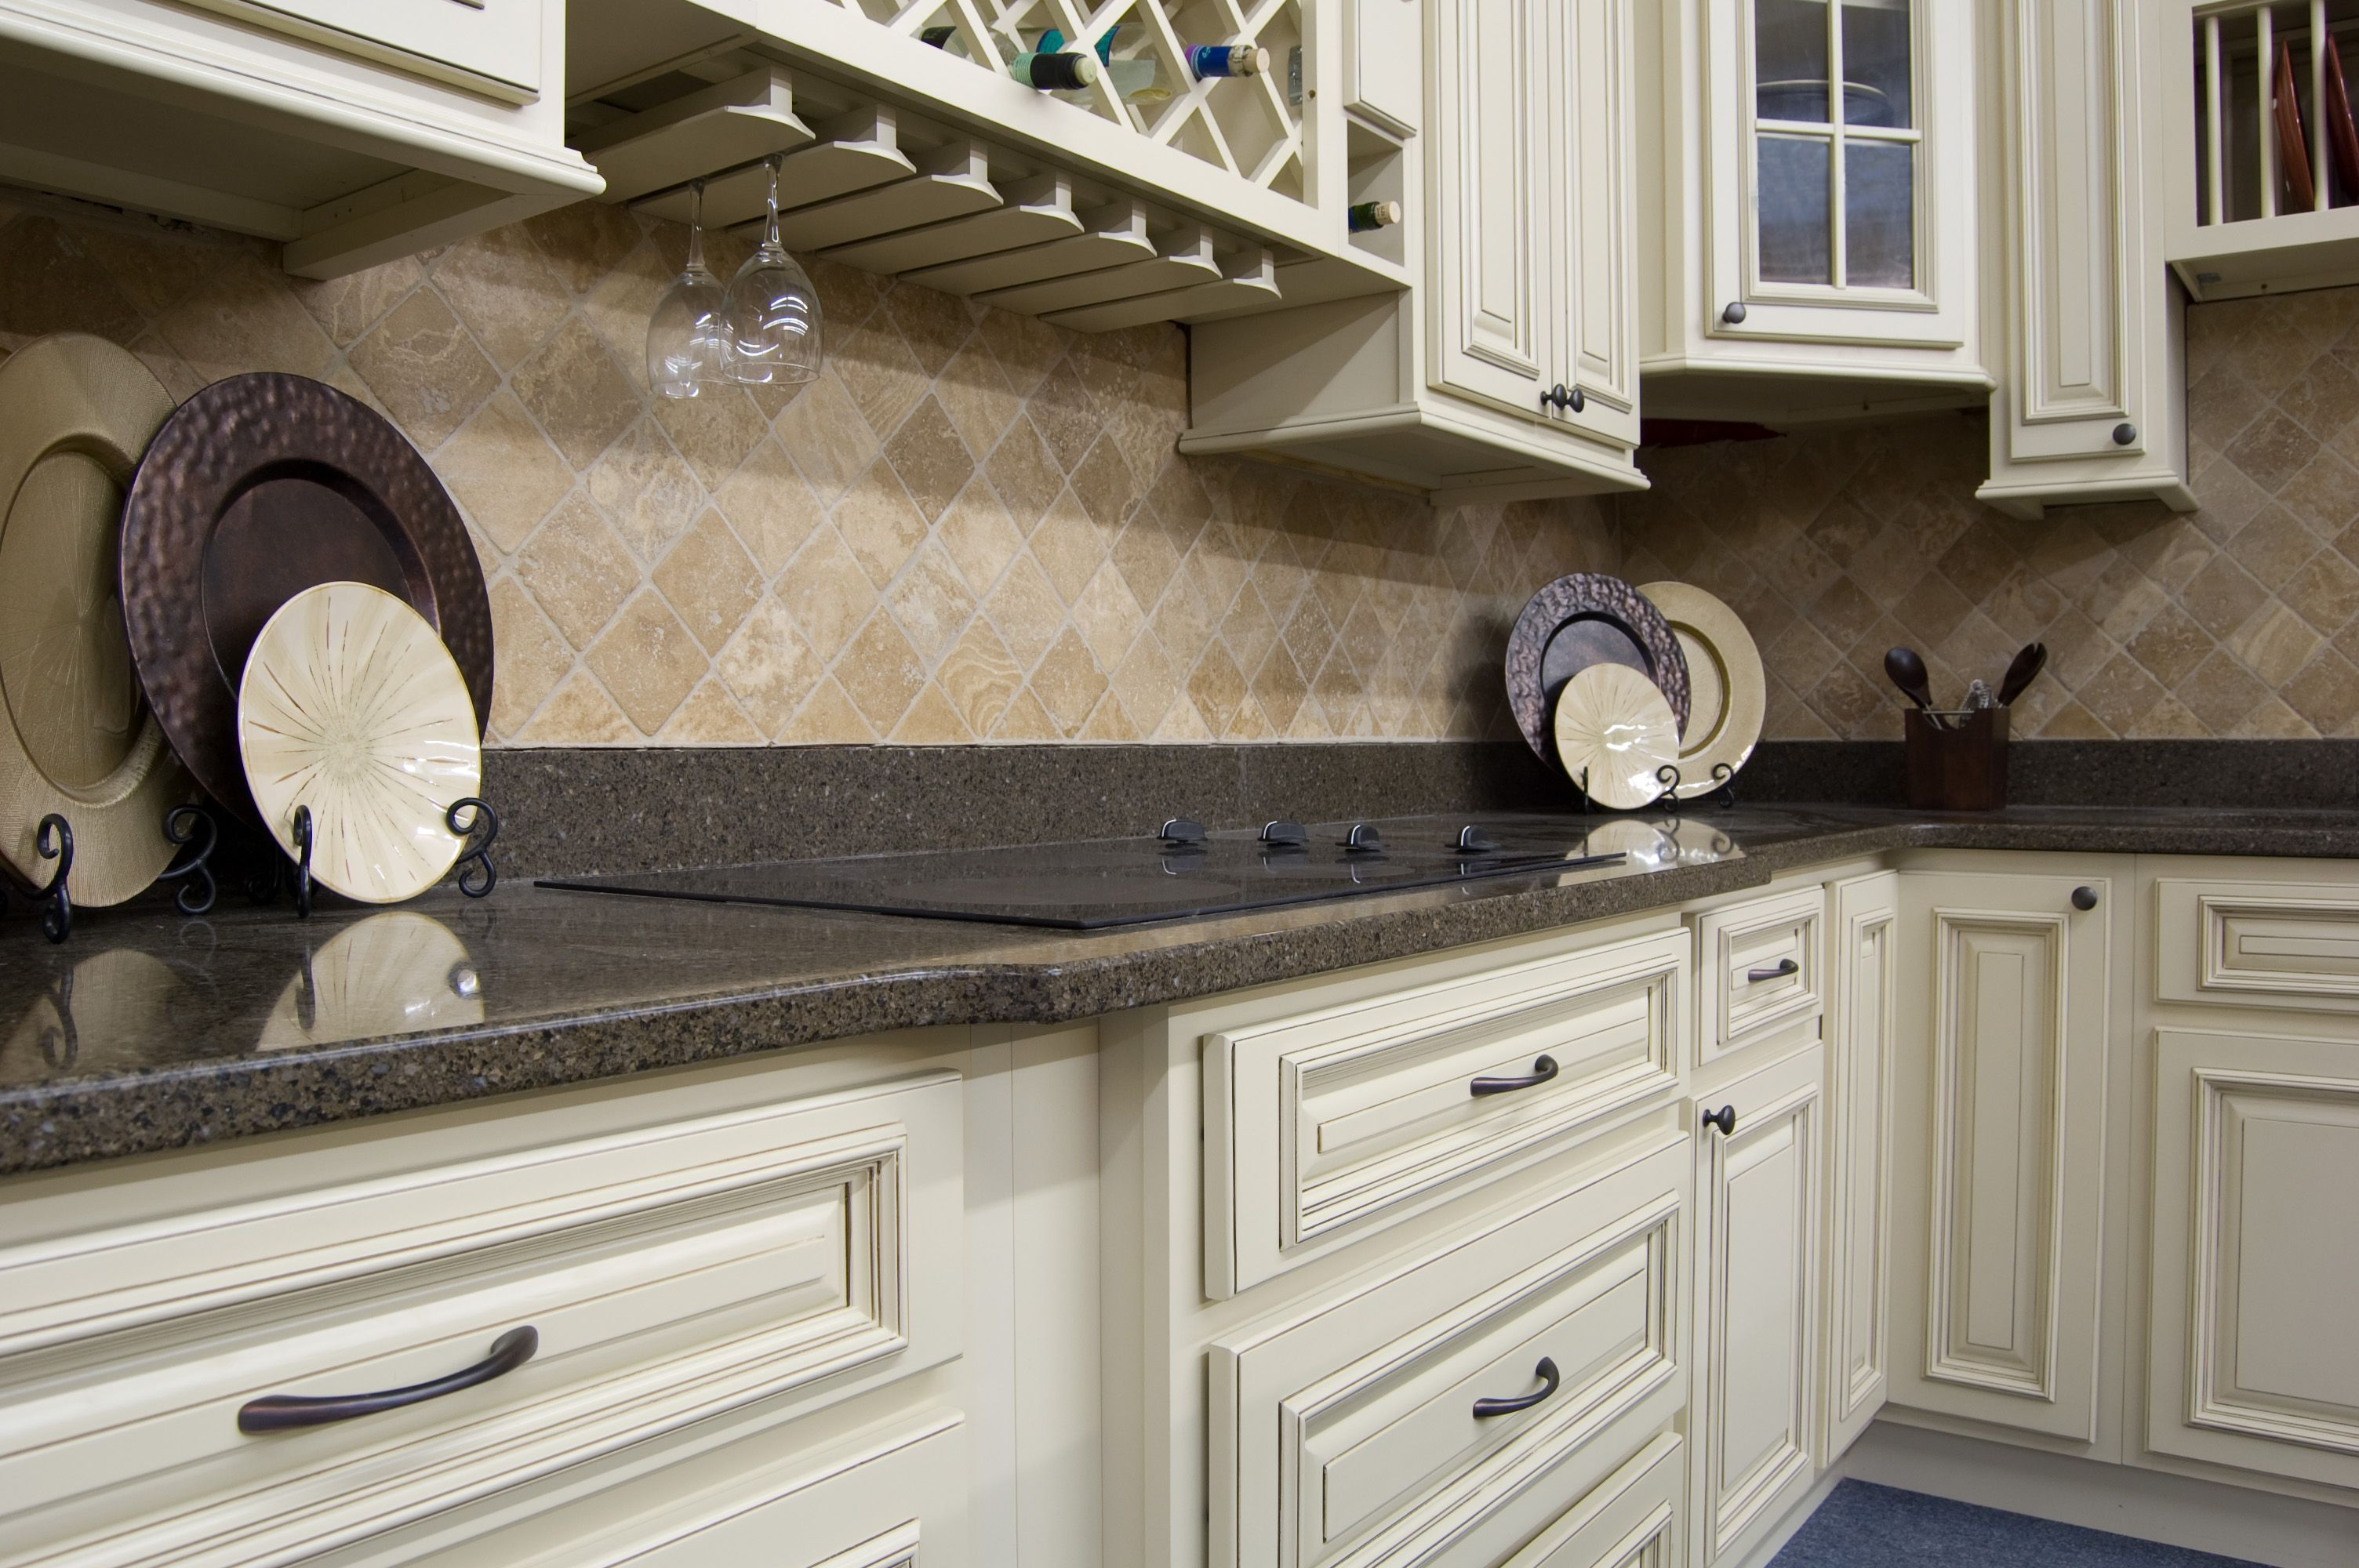 Pin By Myrick Stubbs On Work Kitchen Redo Countertops Kitchen Cabinets